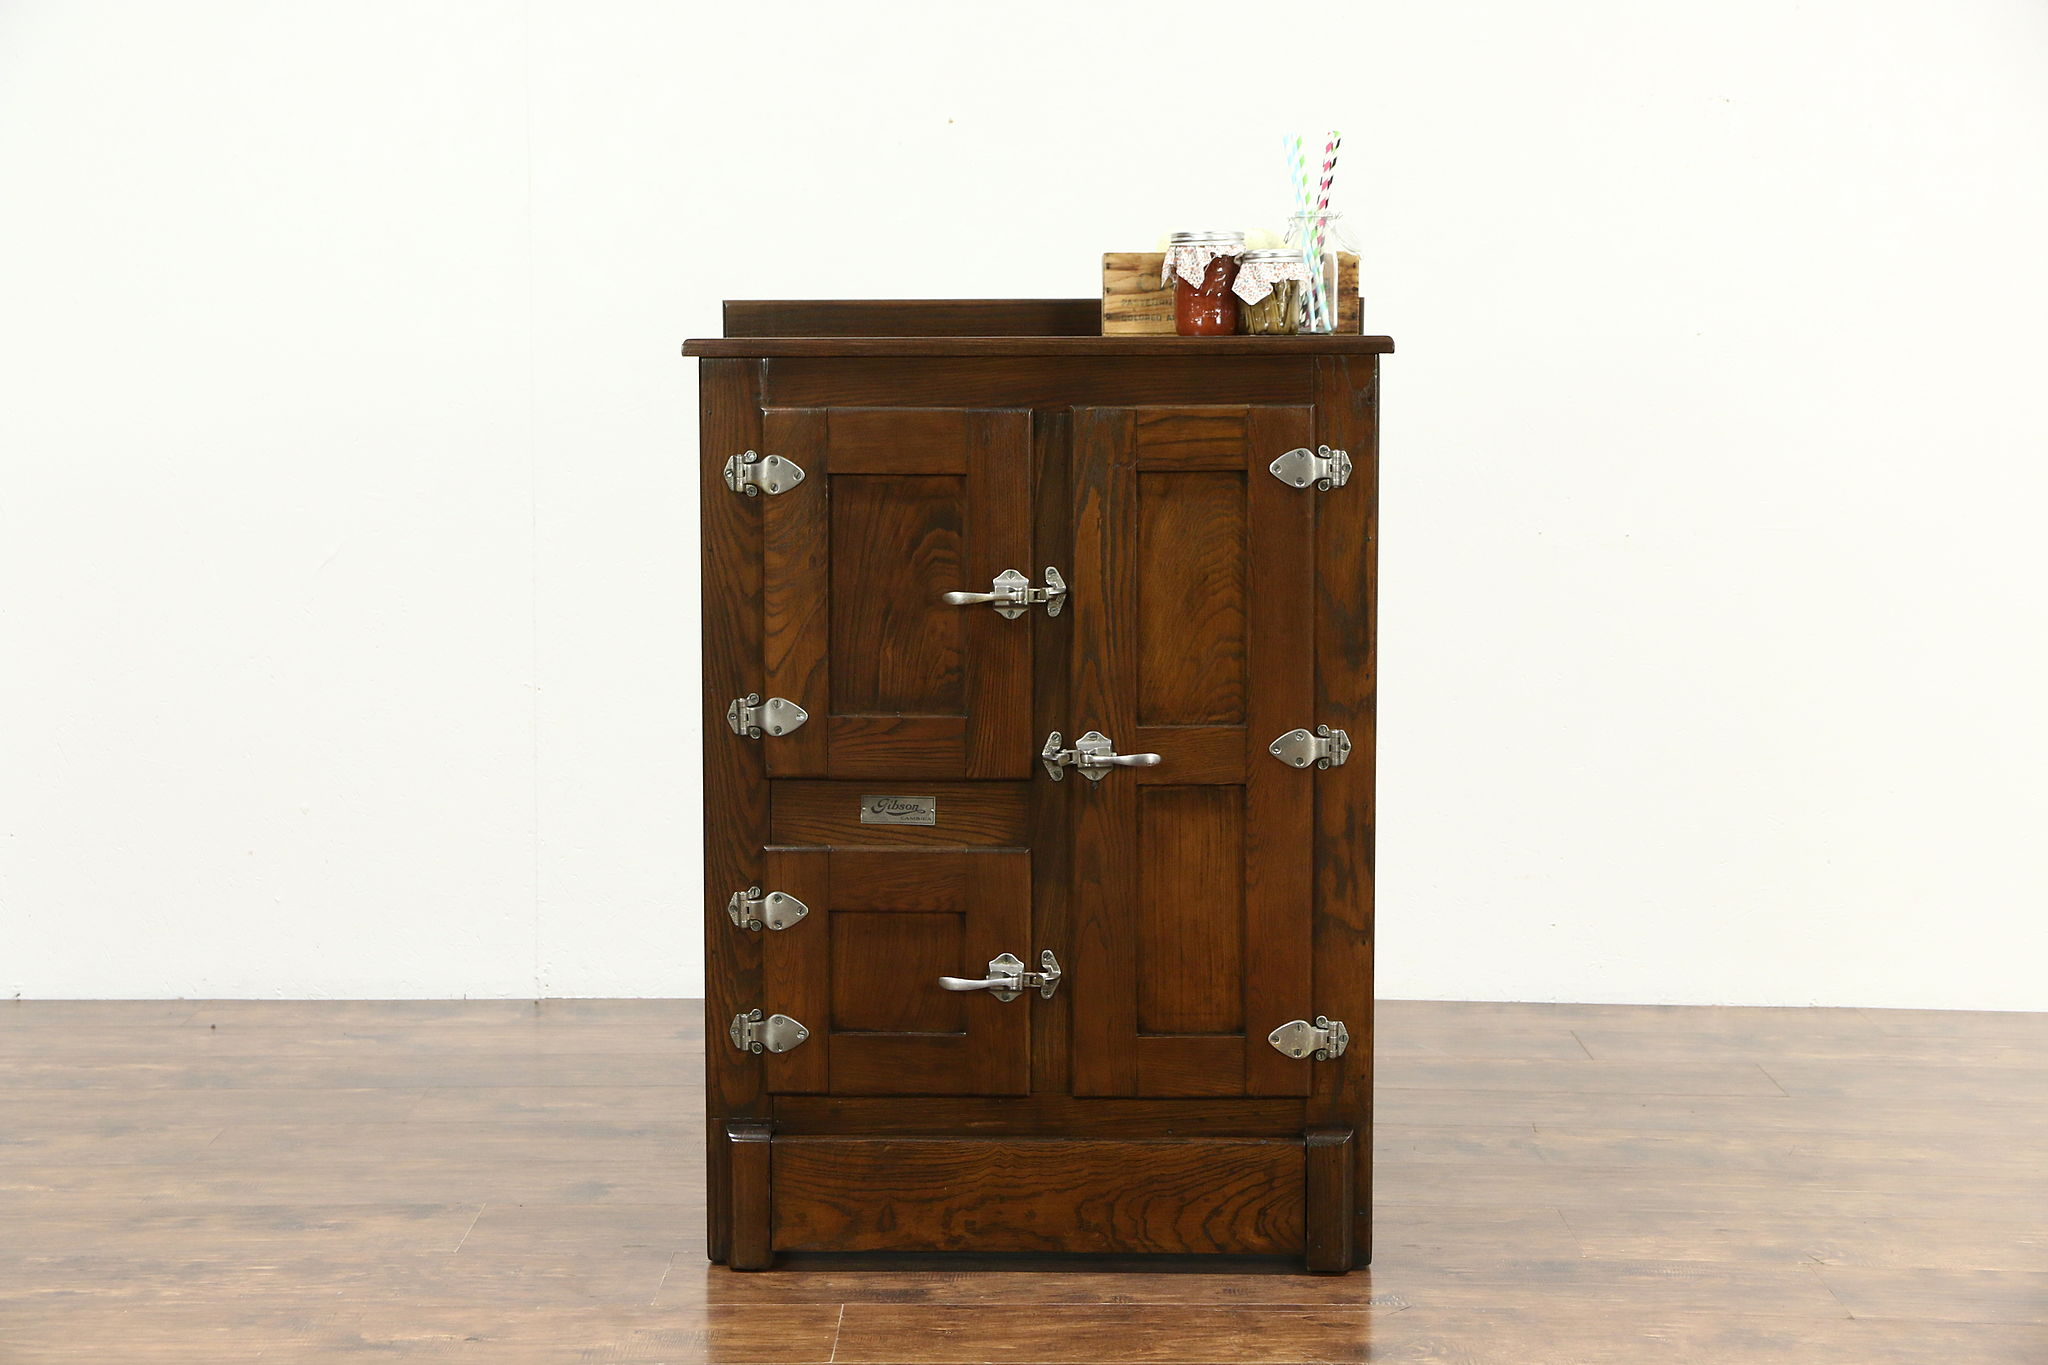 Oak Antique 1900 Kitchen Pantry Ice Box, Signed Gibson of Cambria